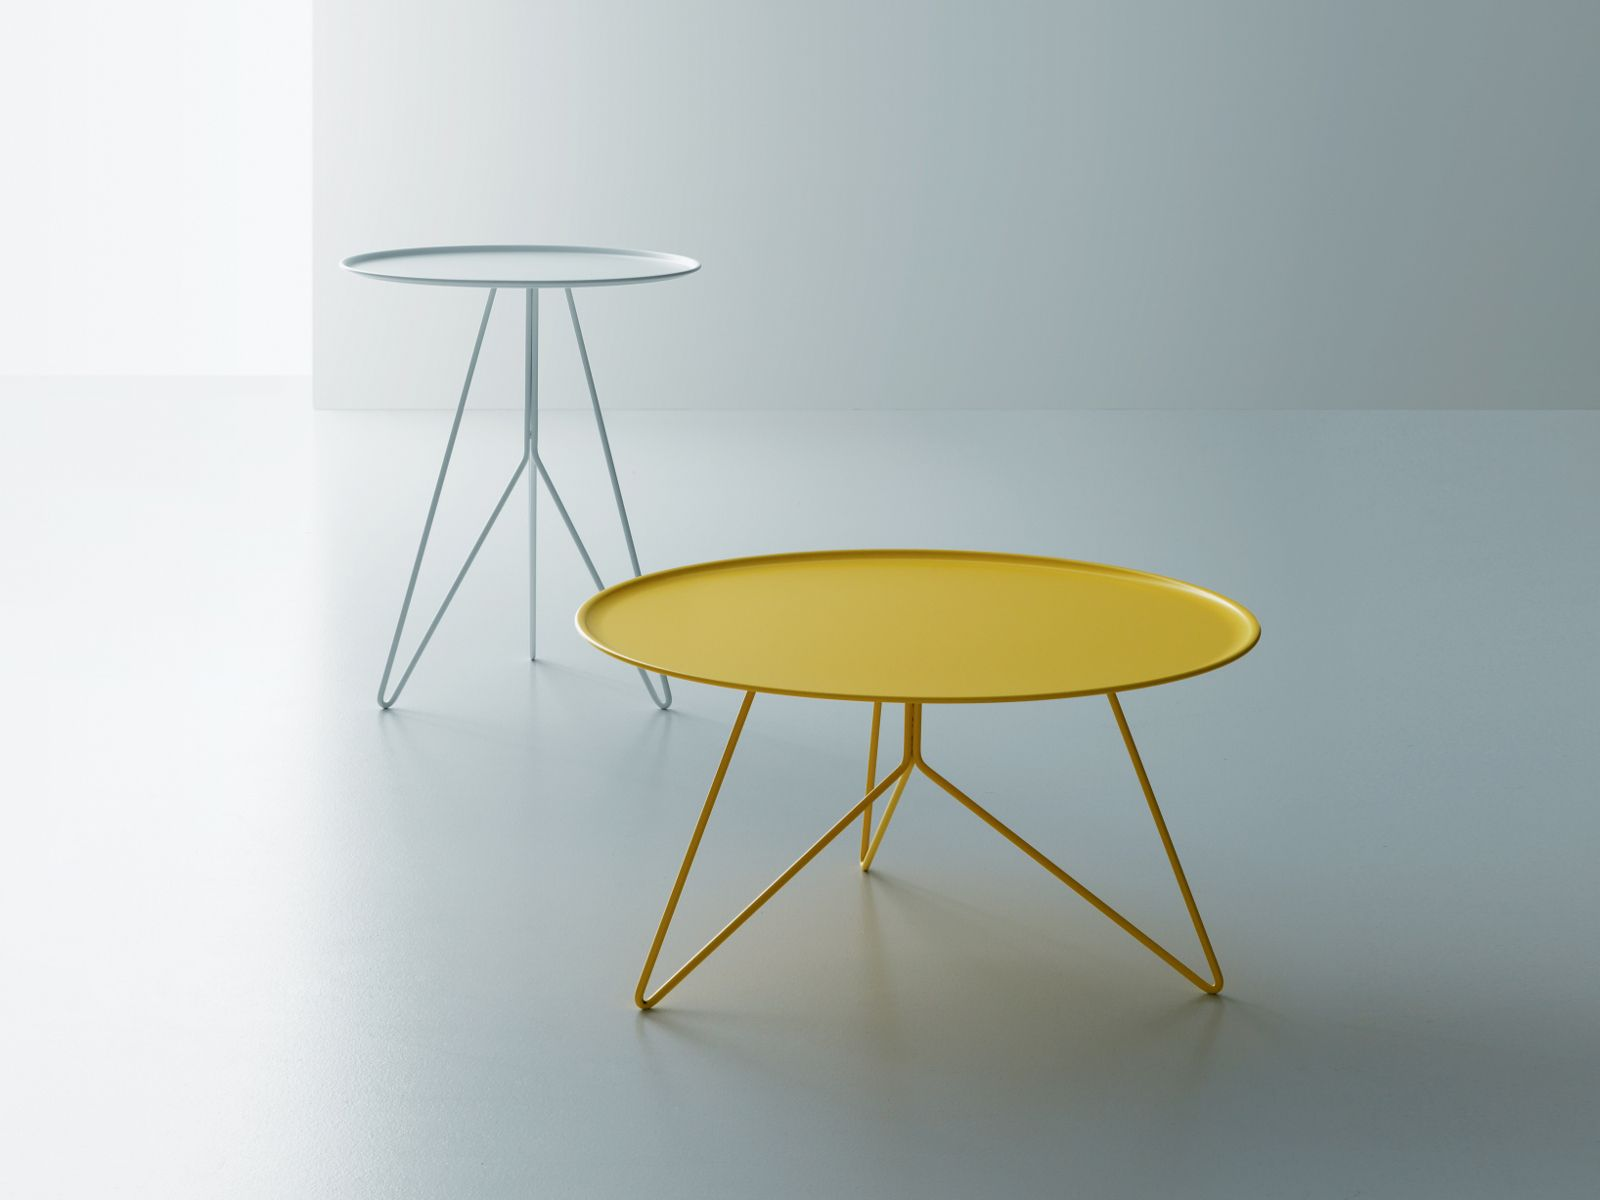 Meilleur De De Table Basse Ronde Design